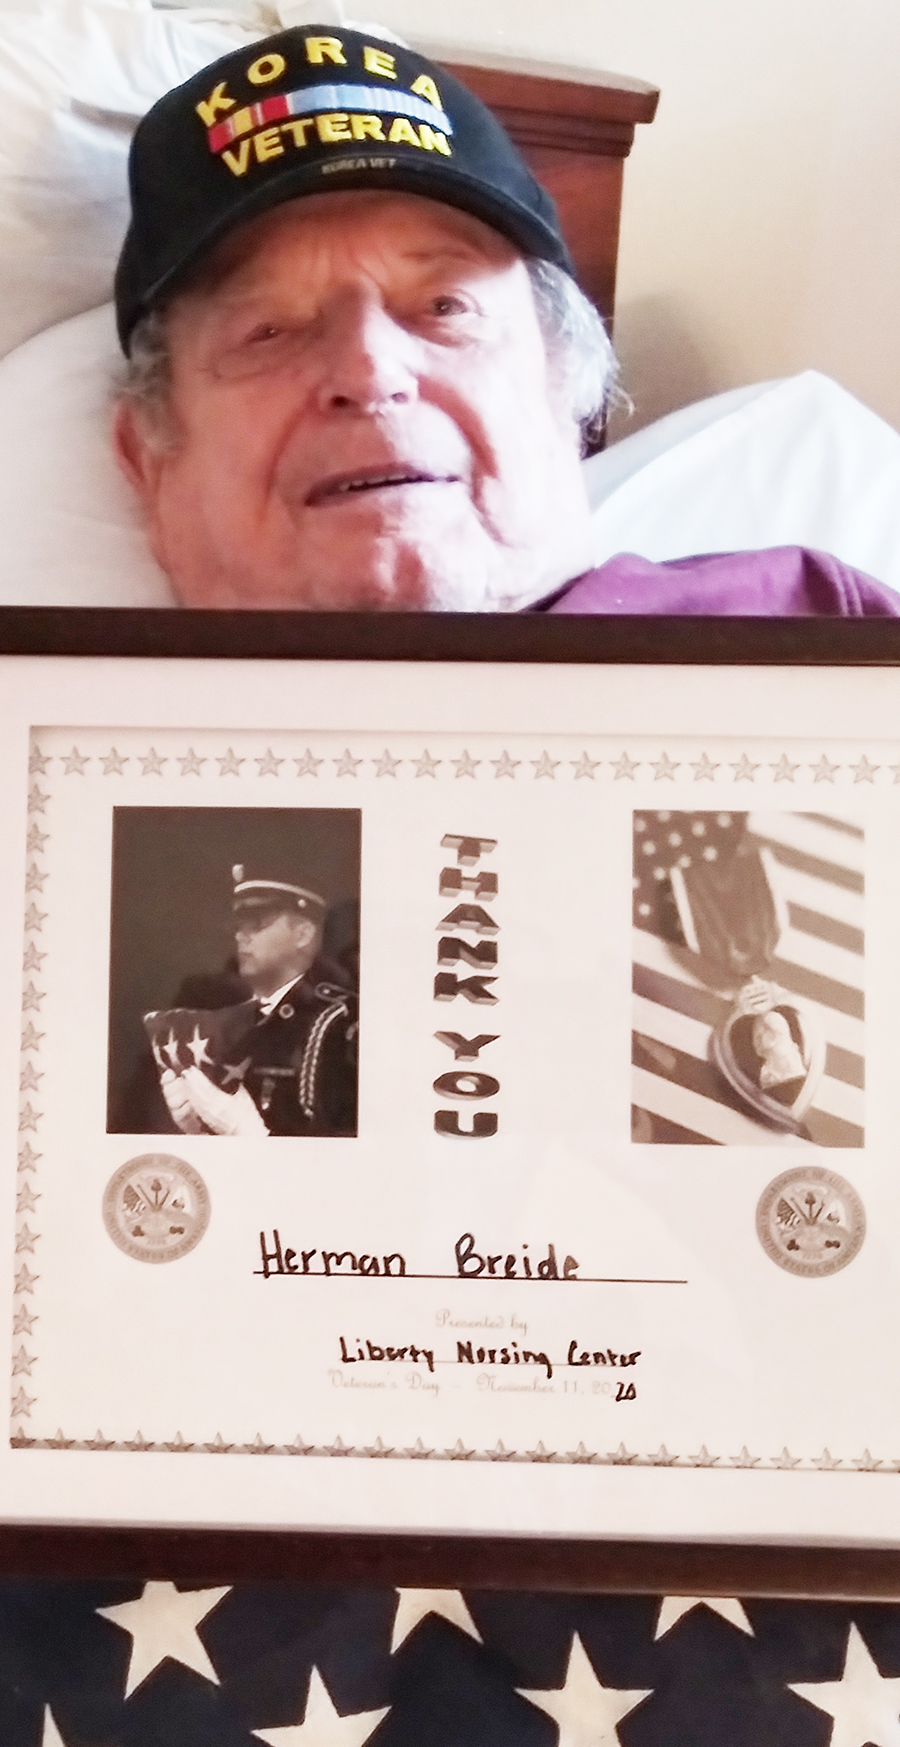 Honoring our Veteran Herman Briede on Veteran's Day